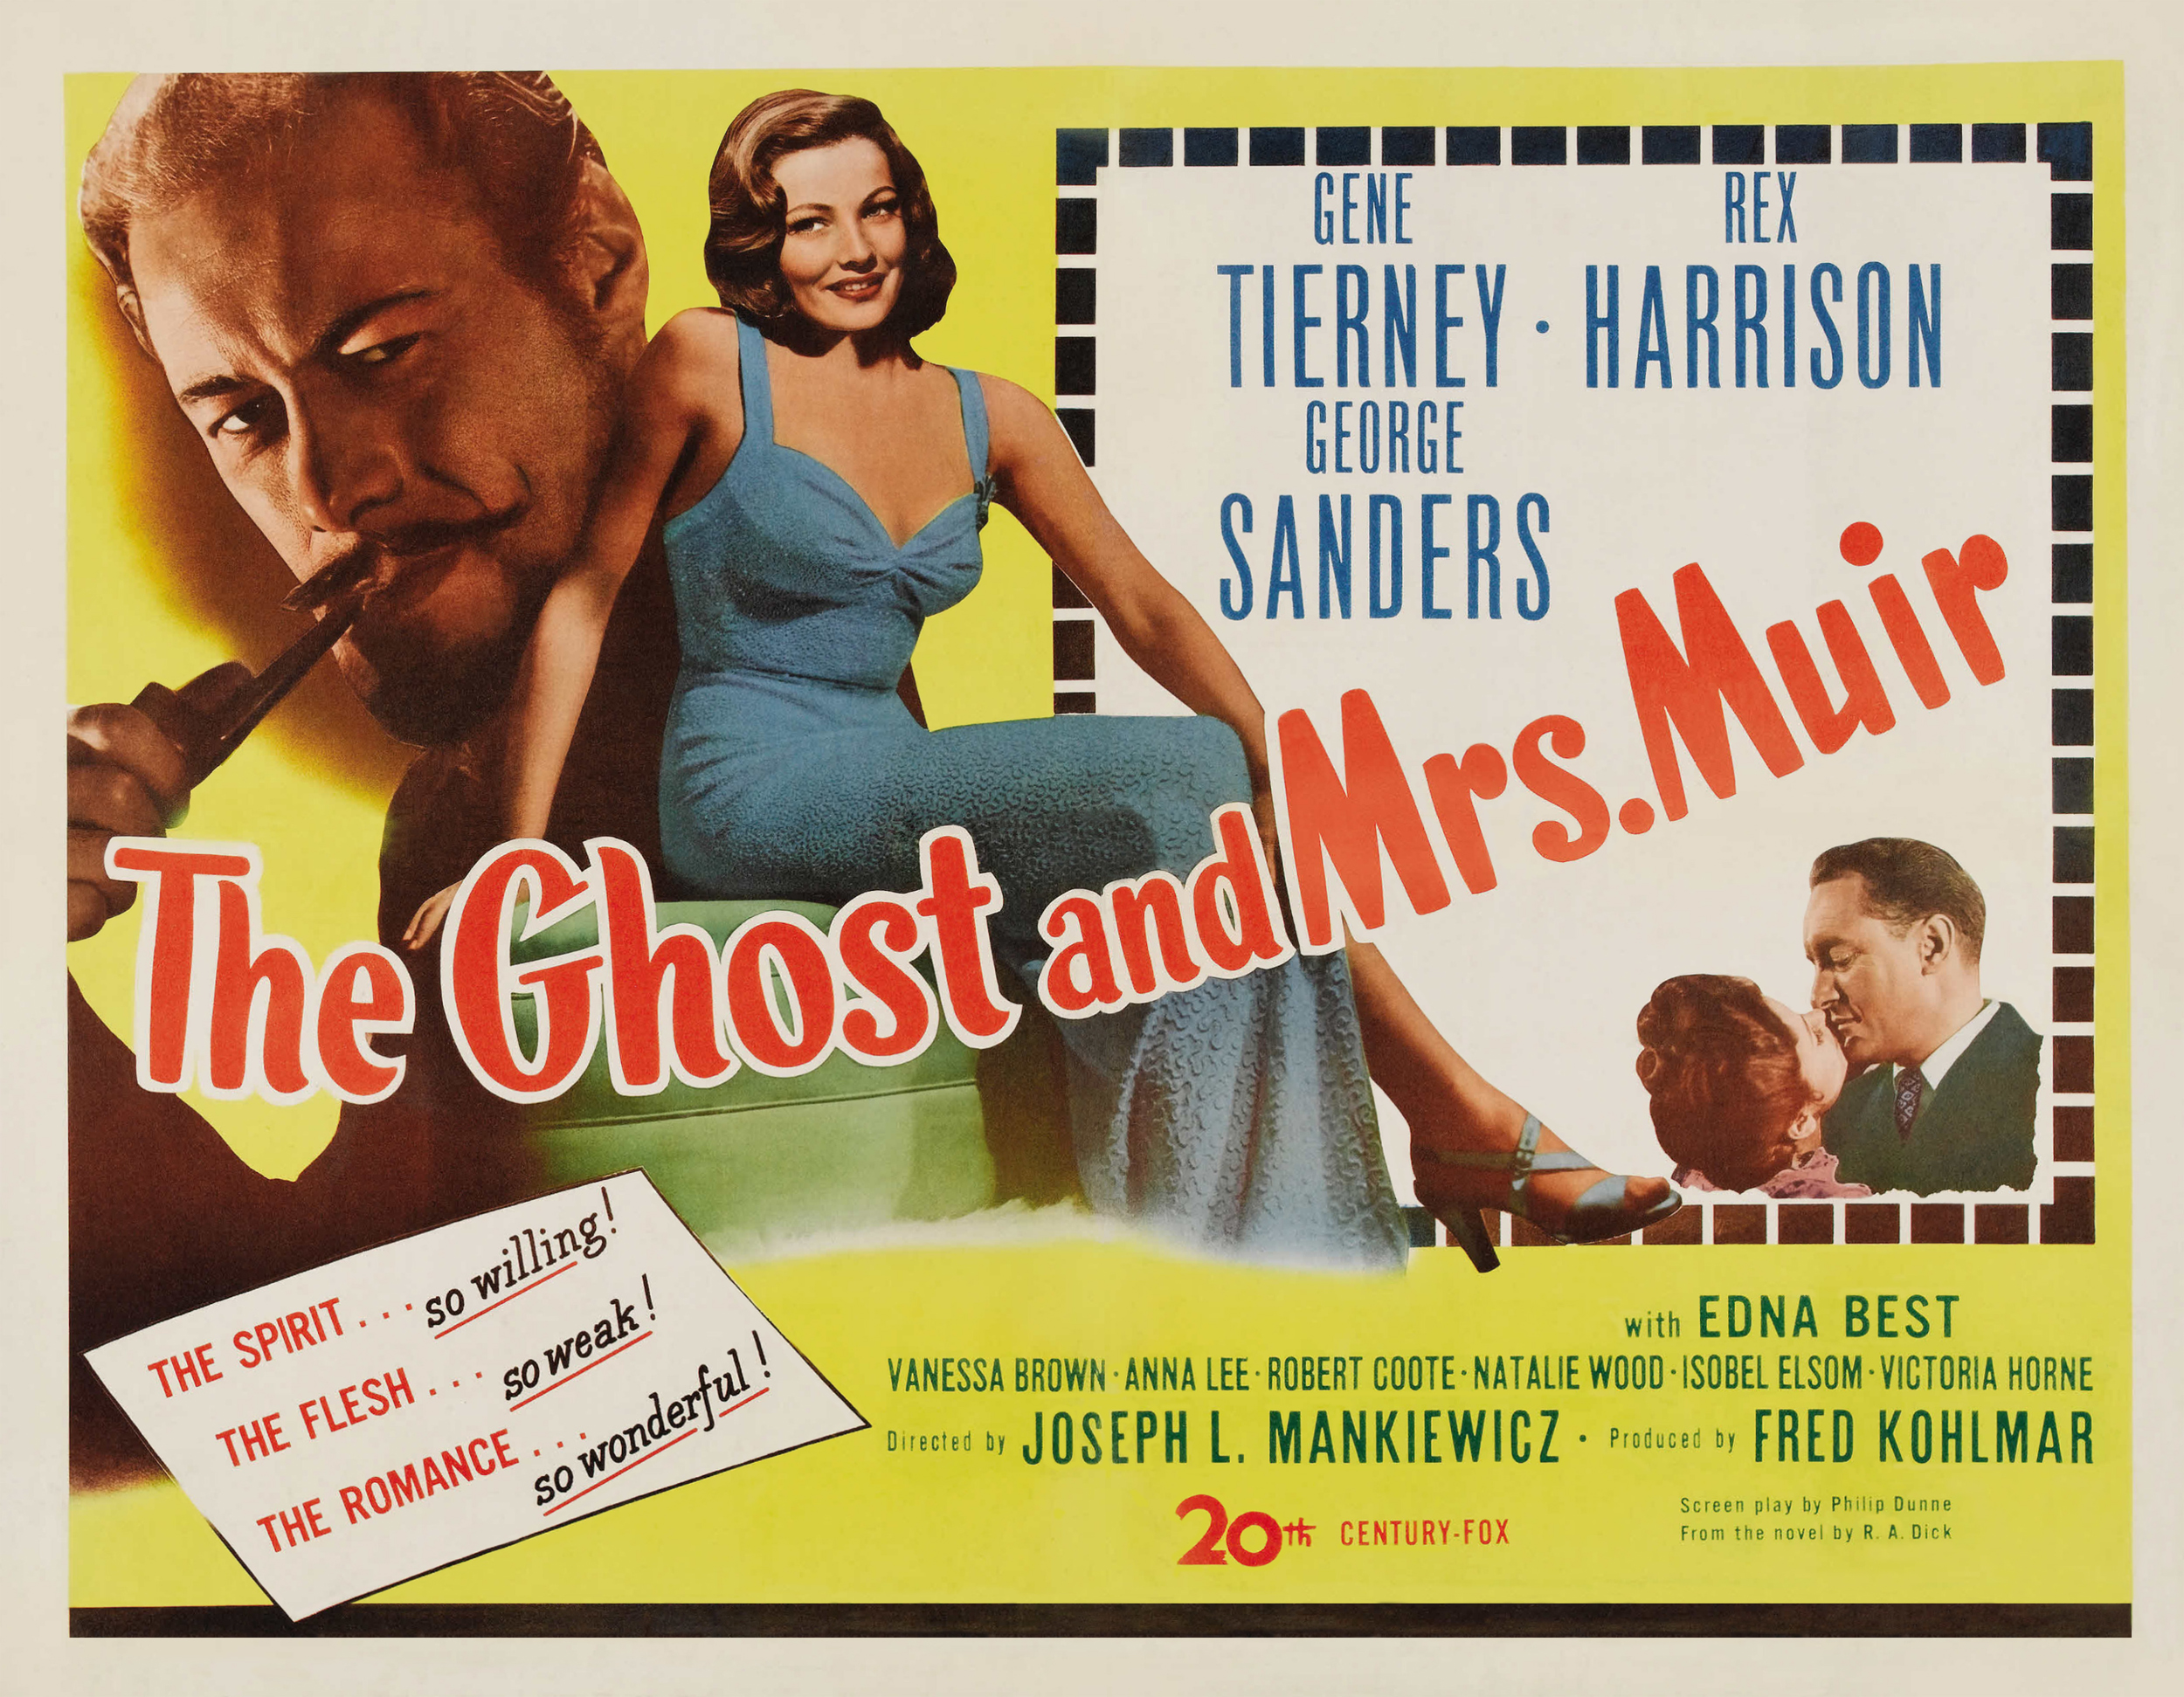 poster_ghost_and_mrs_muir_the_02.jpg